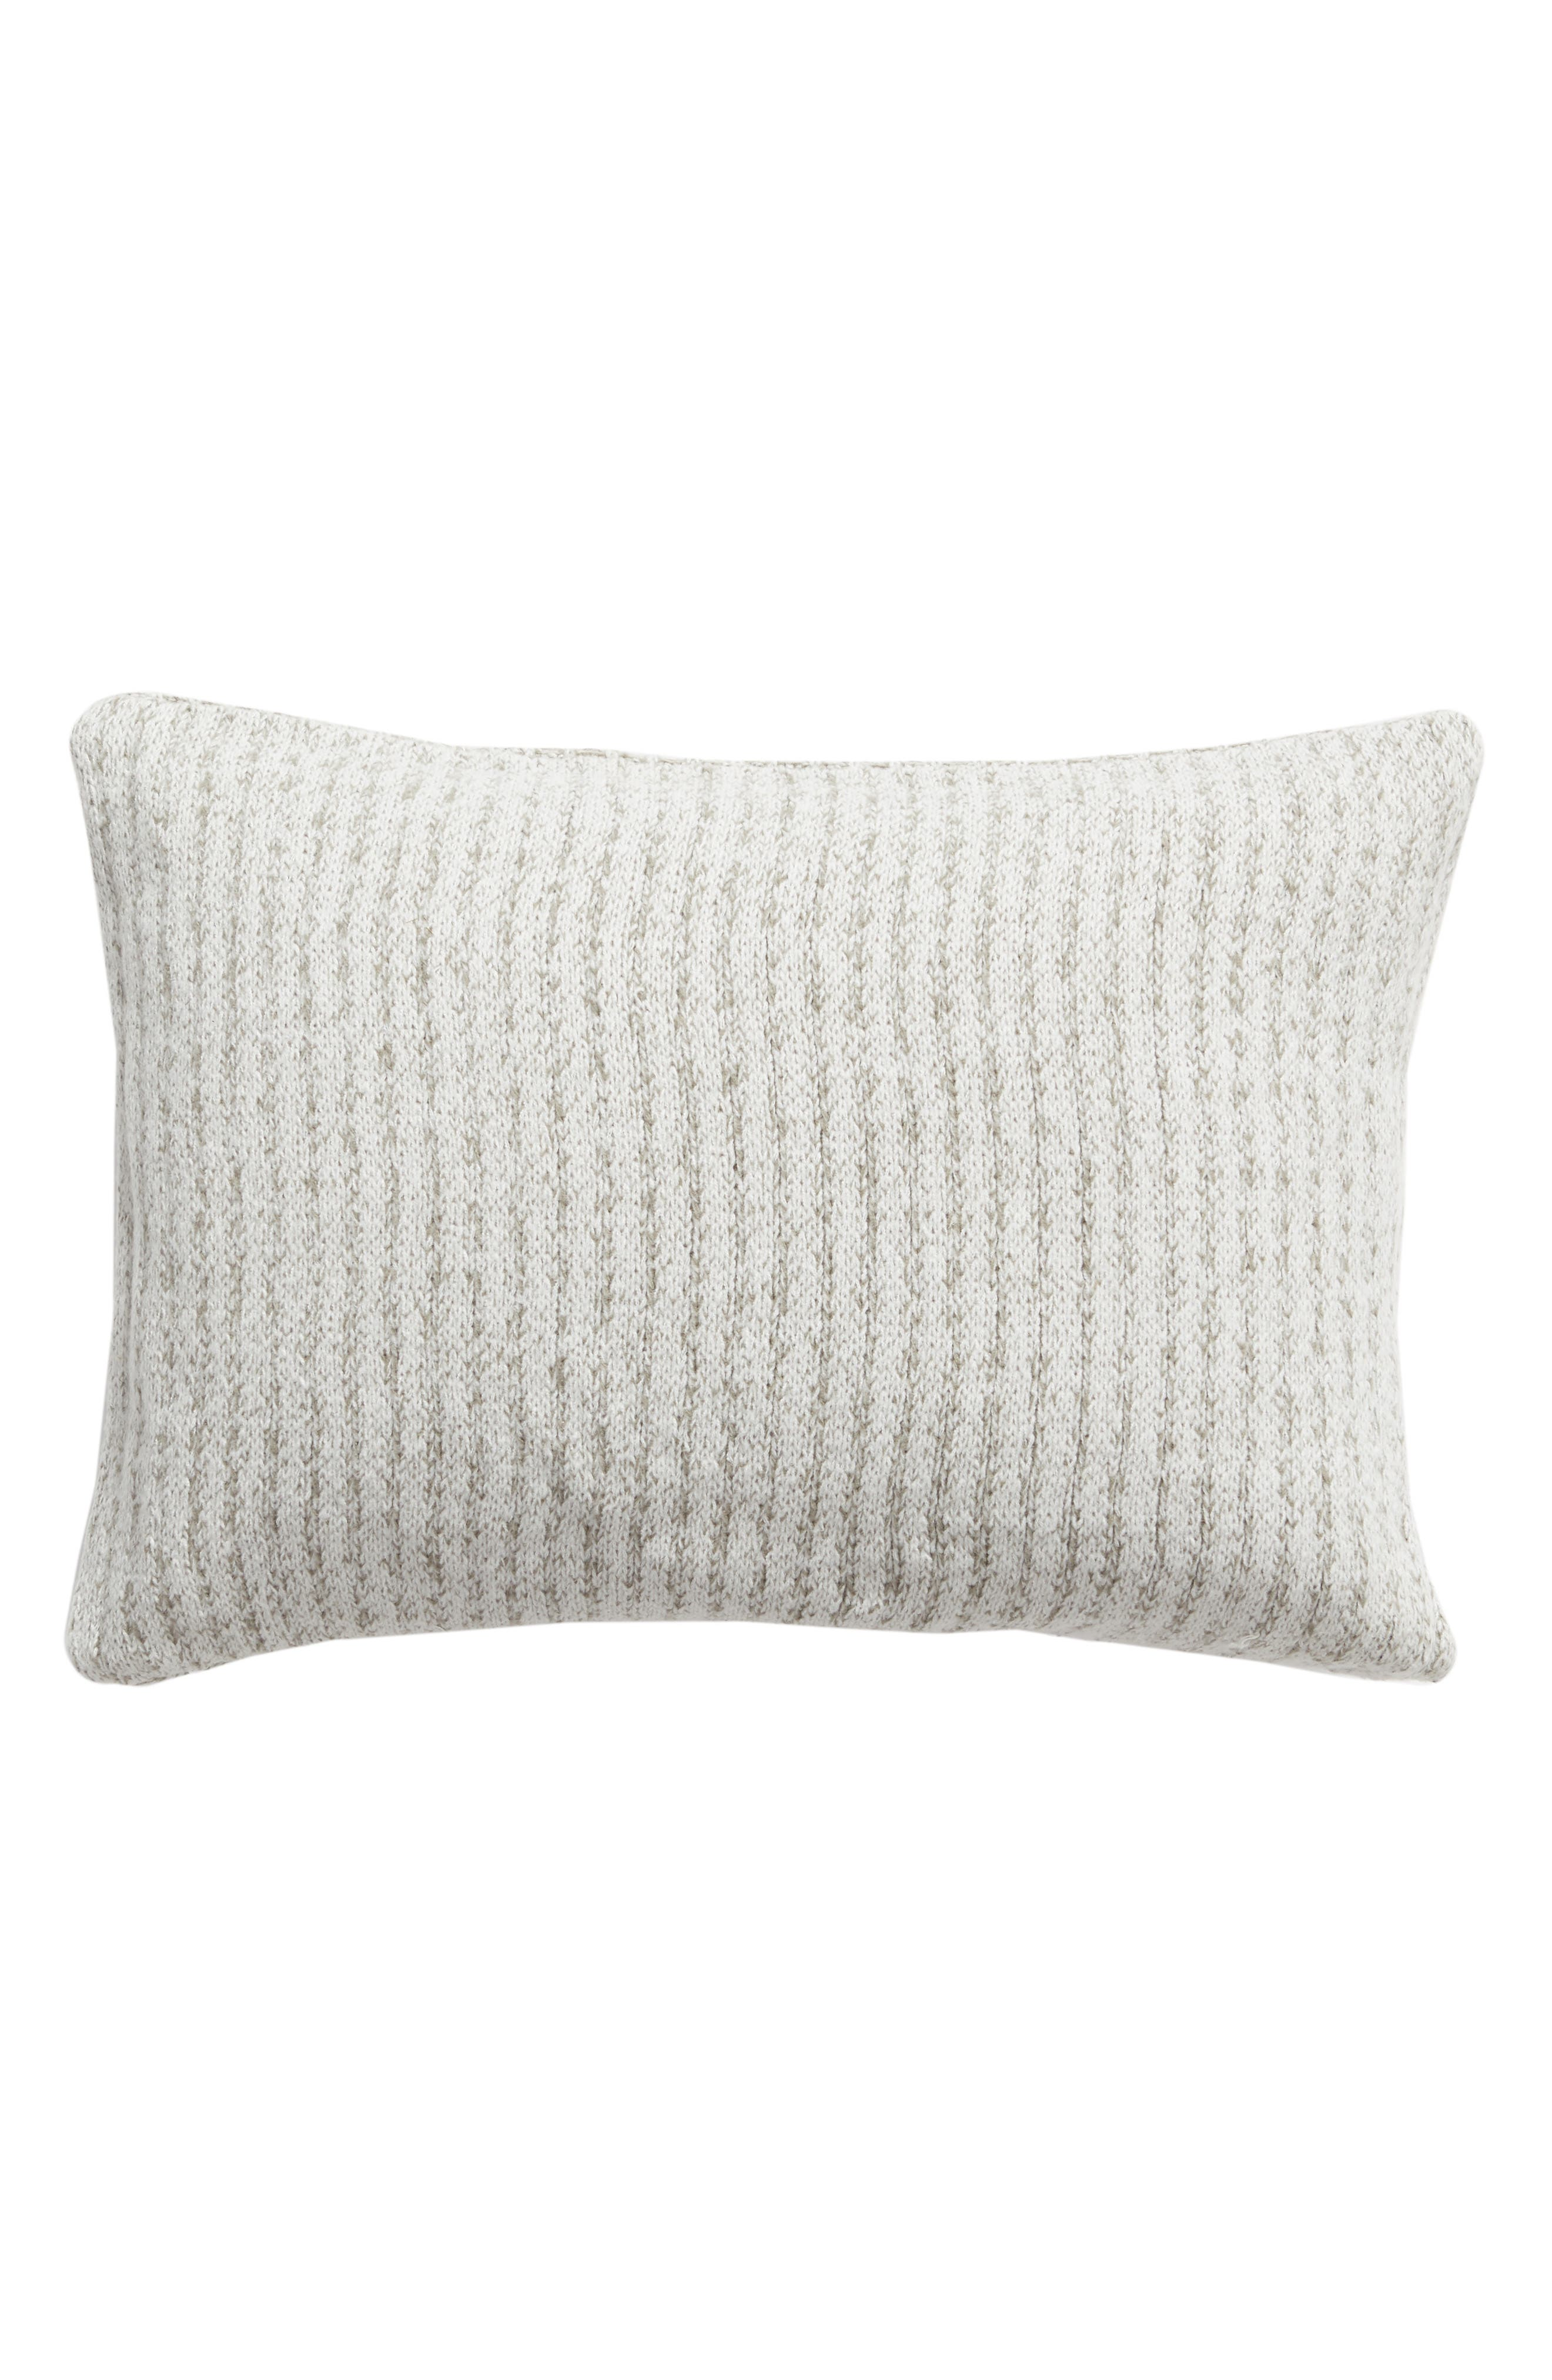 Soft Waffle Grid Accent Pillow,                             Alternate thumbnail 2, color,                             GREY WEATHER MULTI